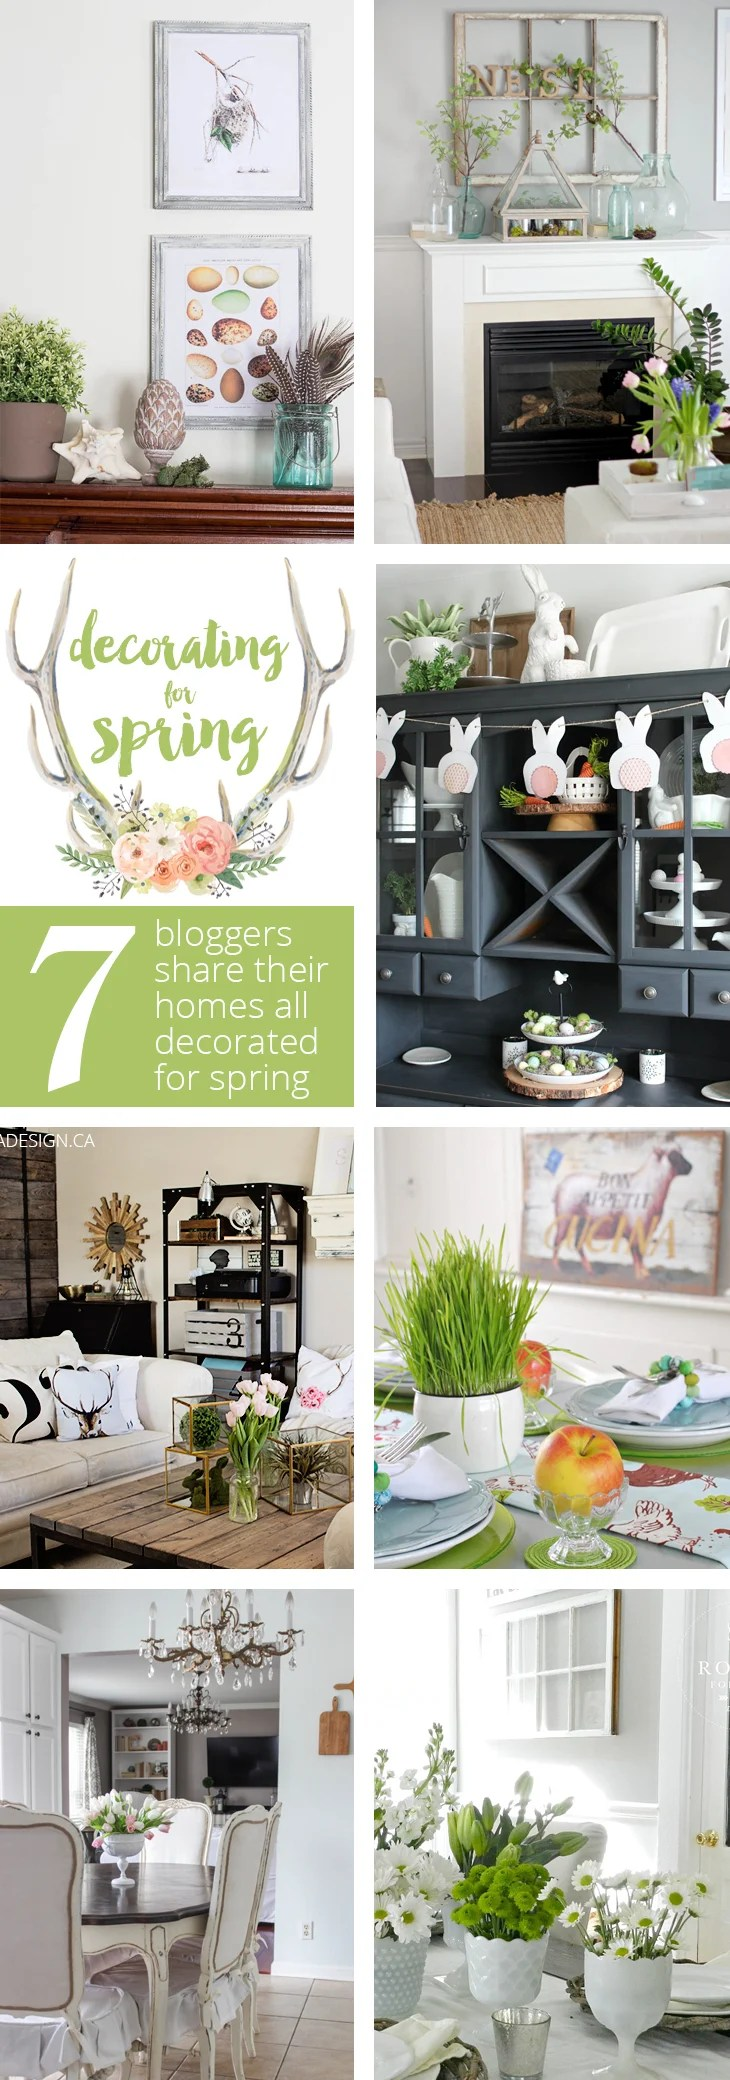 DECORATING FOR SPRING - 7 bloggers share their homes